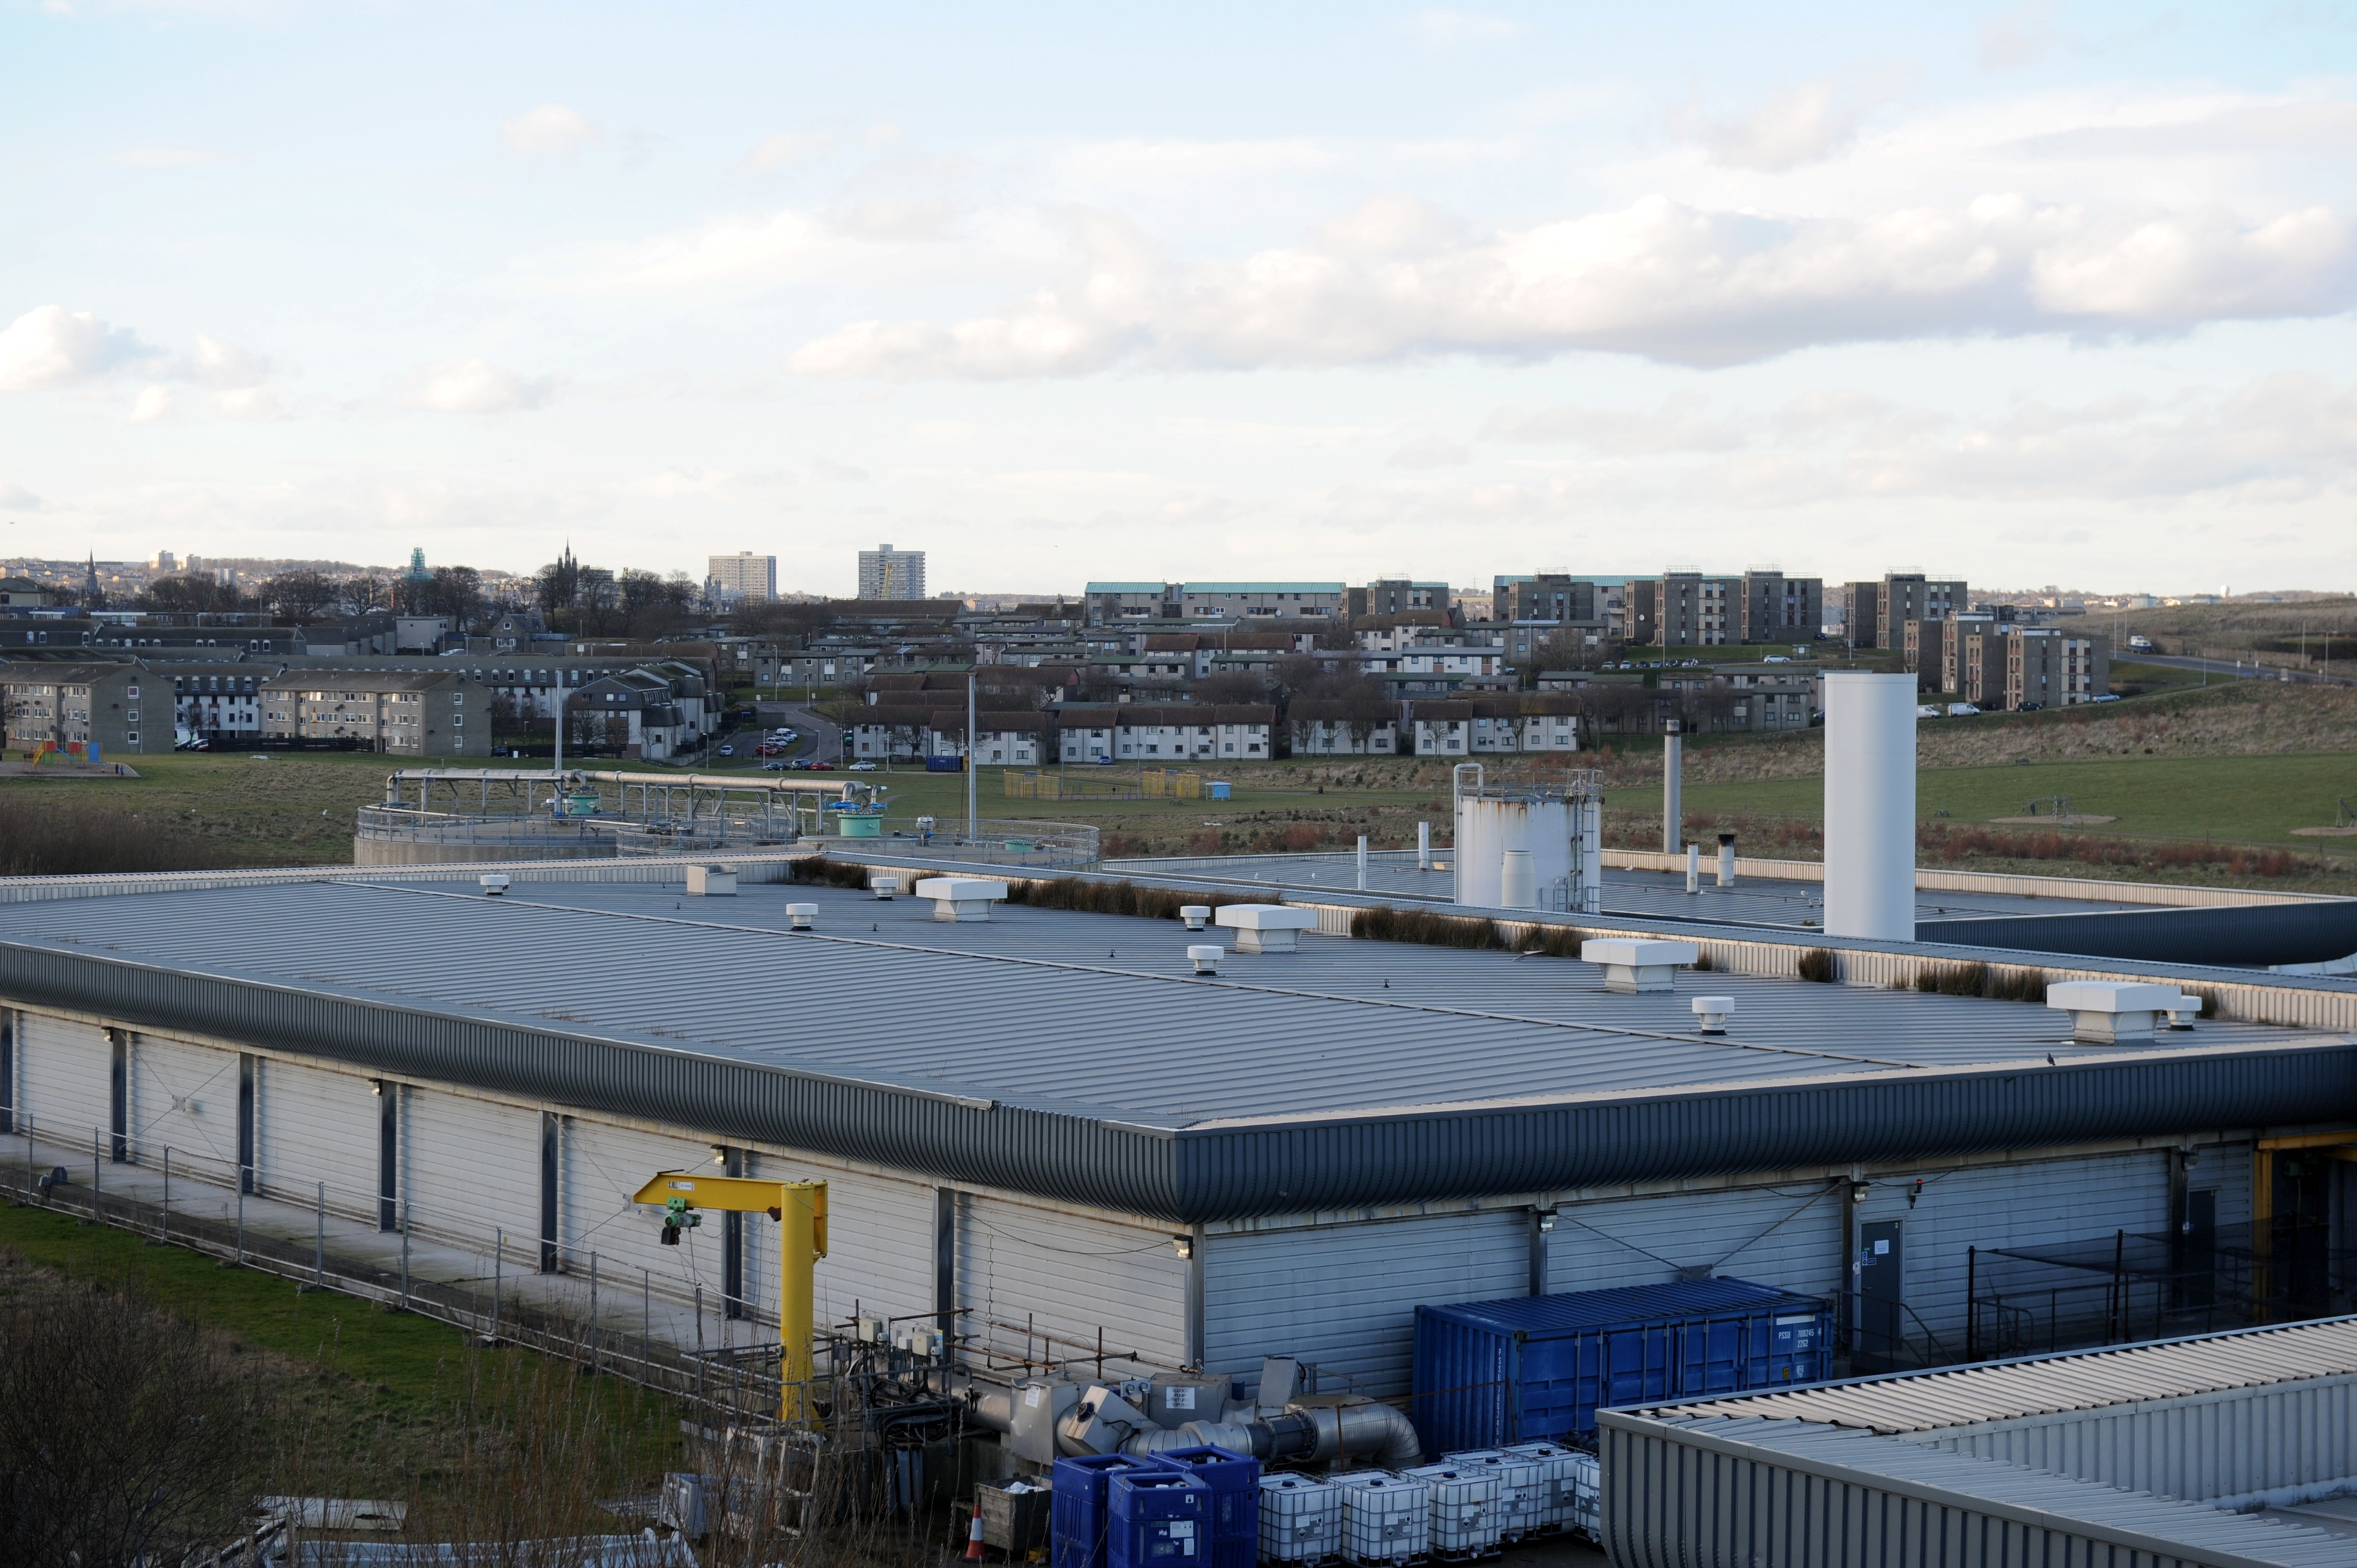 The Nigg Waste Water Treatment Works could be a source of an unpleasant smell in Torry.